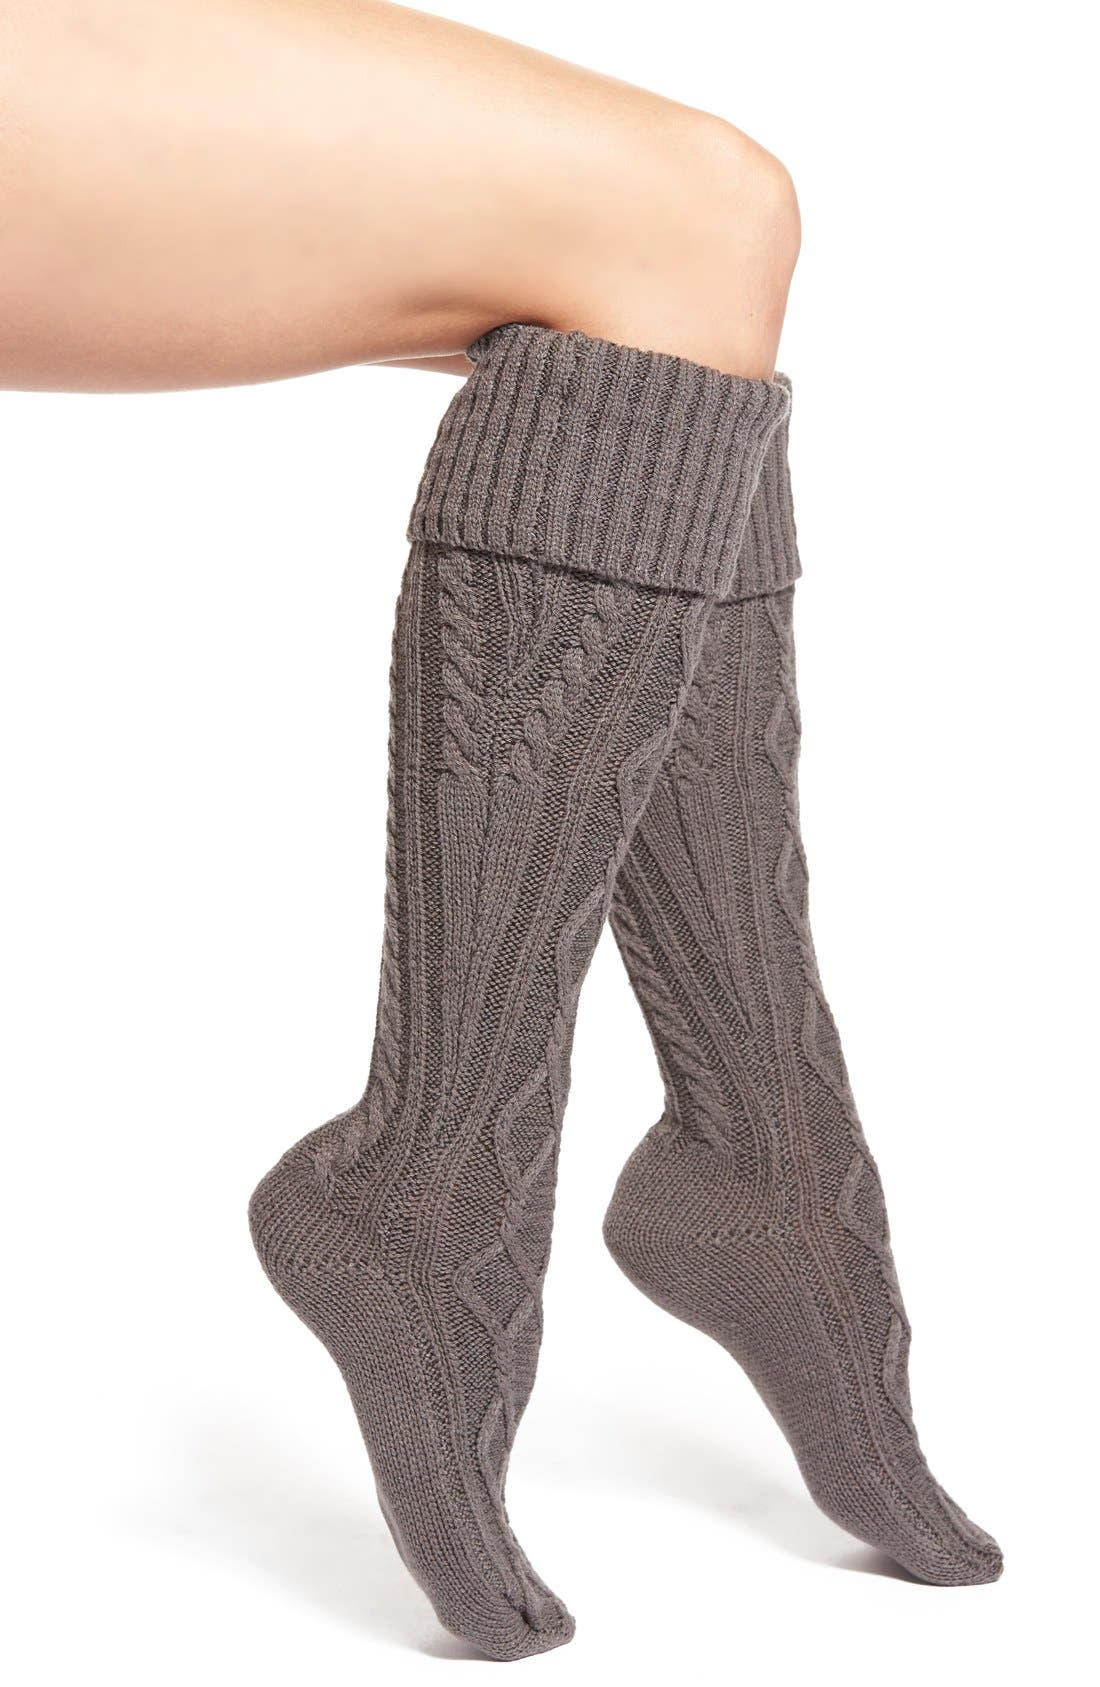 FREE PEOPLE,                             Cable Knit Knee High Socks,                             Main thumbnail 1, color,                             003